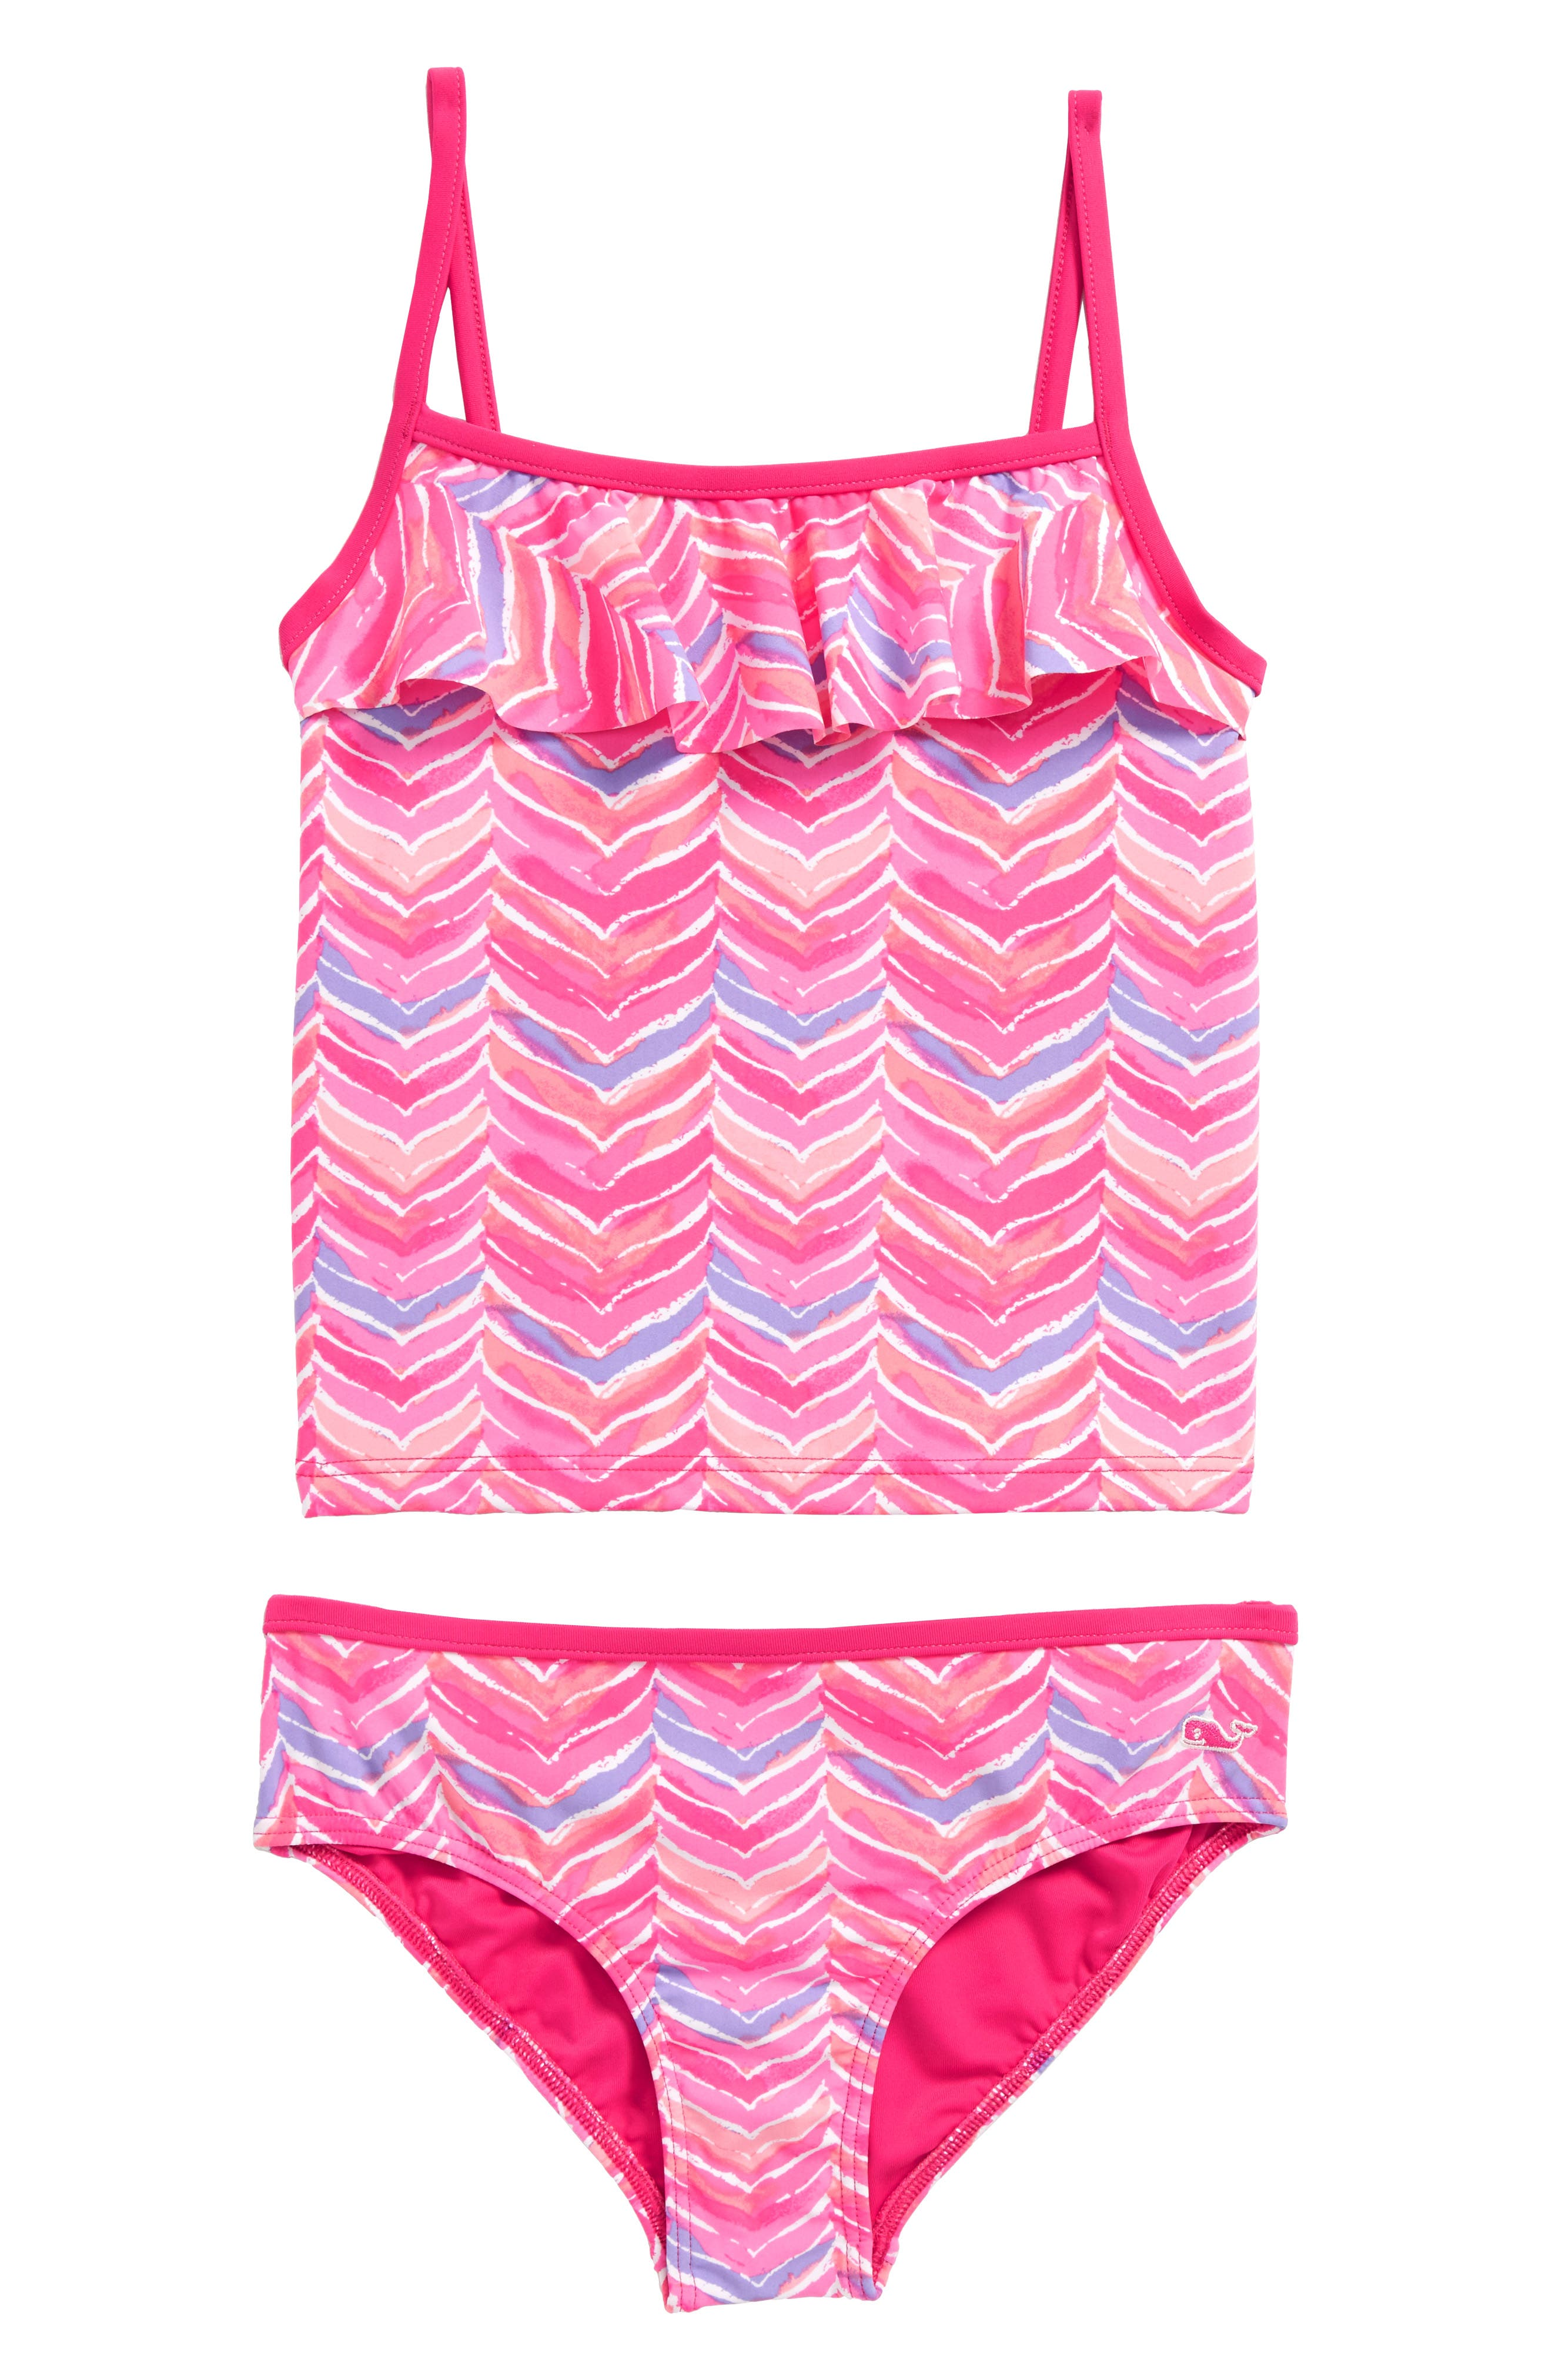 Alternate Image 1 Selected - vineyard vines Whale Tail Two-Piece Tankini Swimsuit (Little Girls & Big Girls)